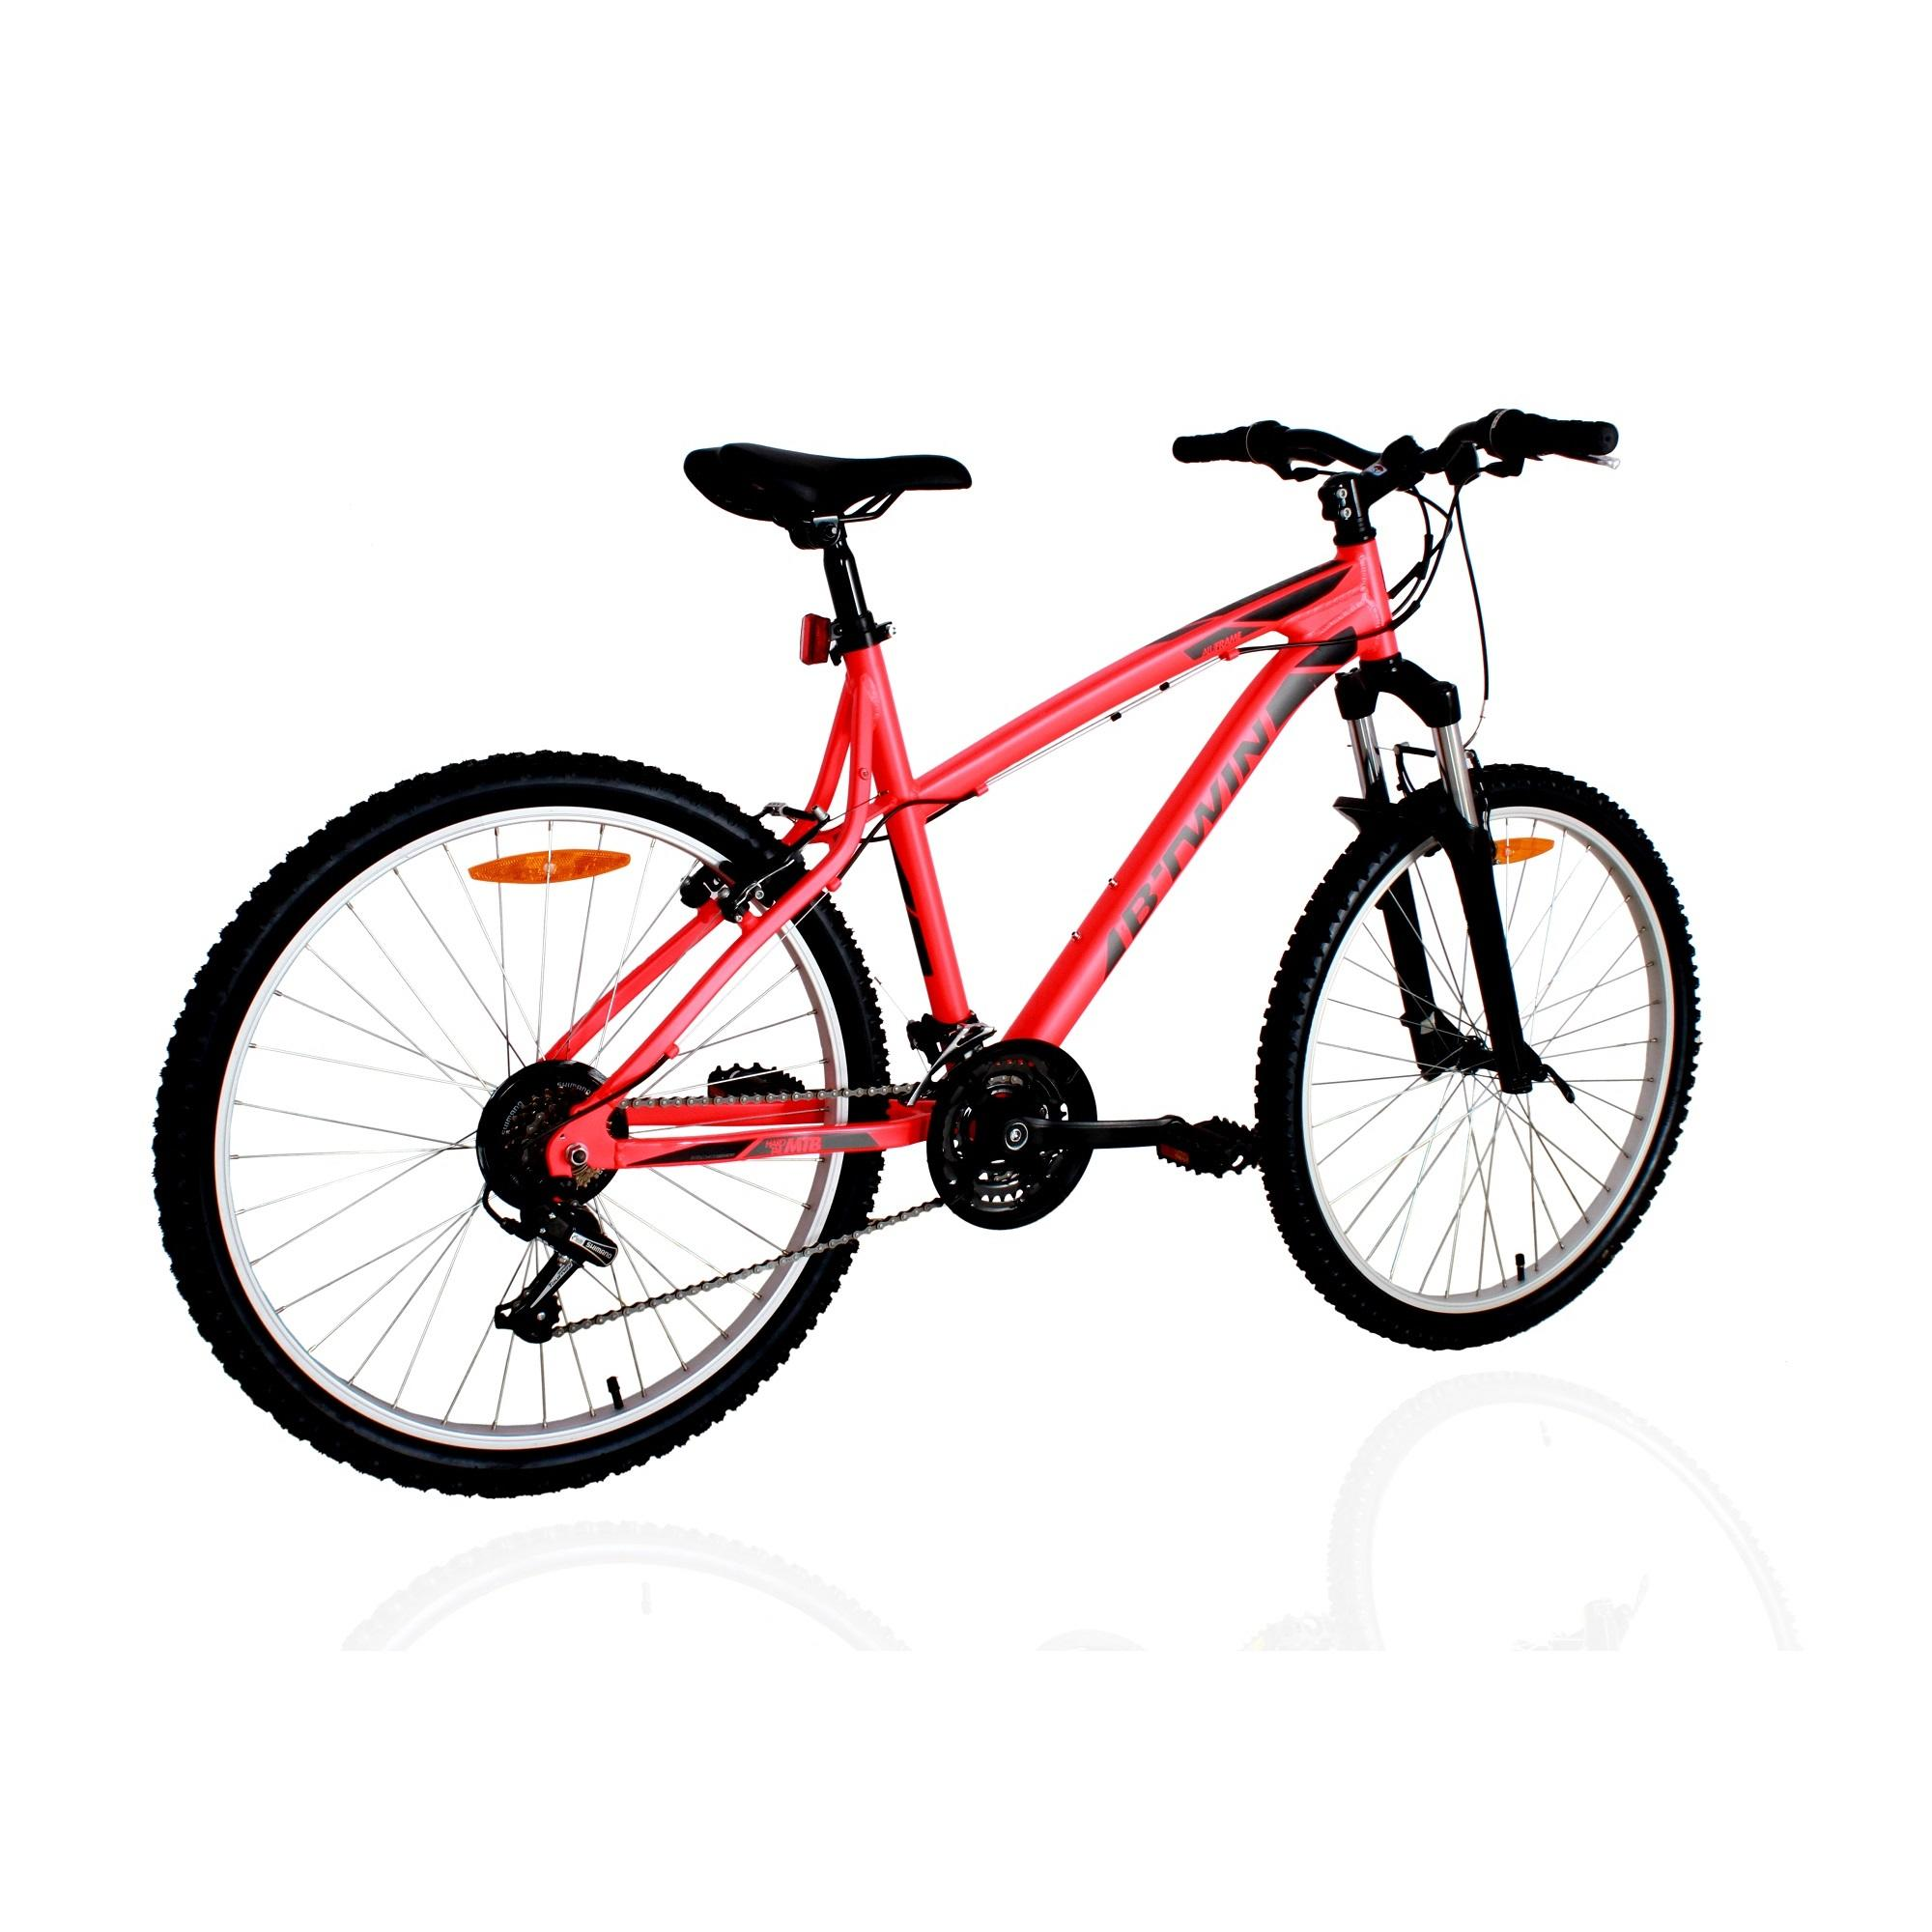 Btwin Rockrider 340 Orange MTB Cycle